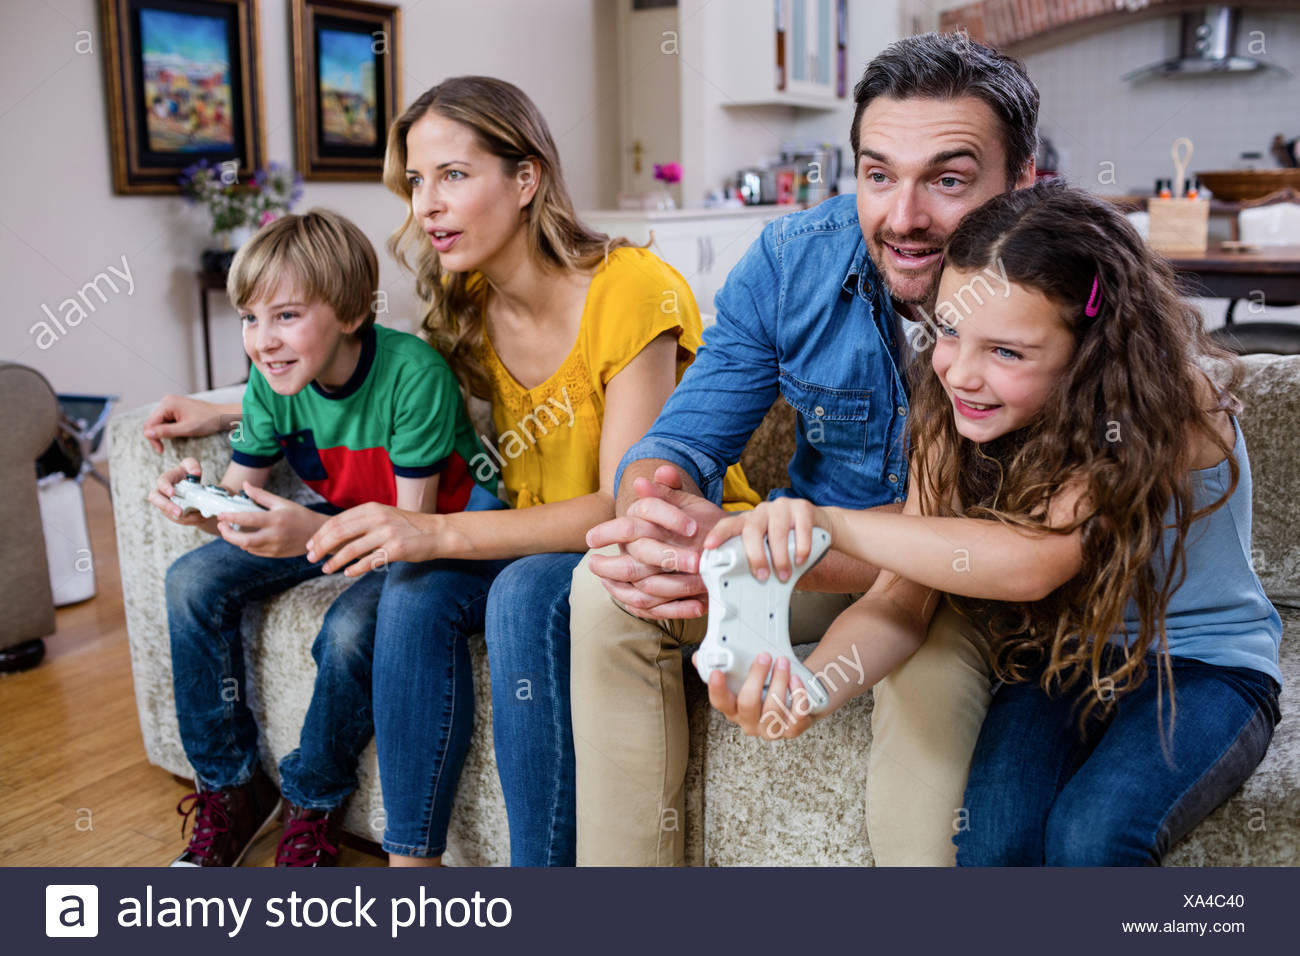 Family sitting on sofa and playing video game Photo Stock